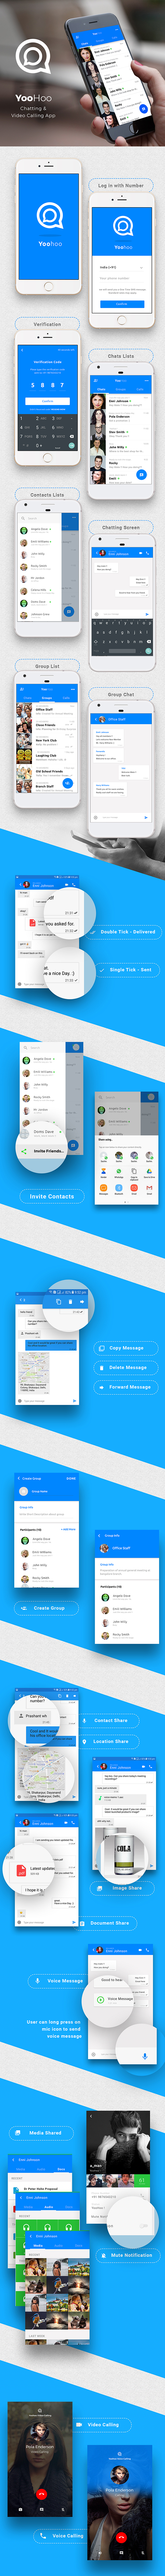 Get - YooHoo v5 0 - Android Chatting App with Voice/Video Calls